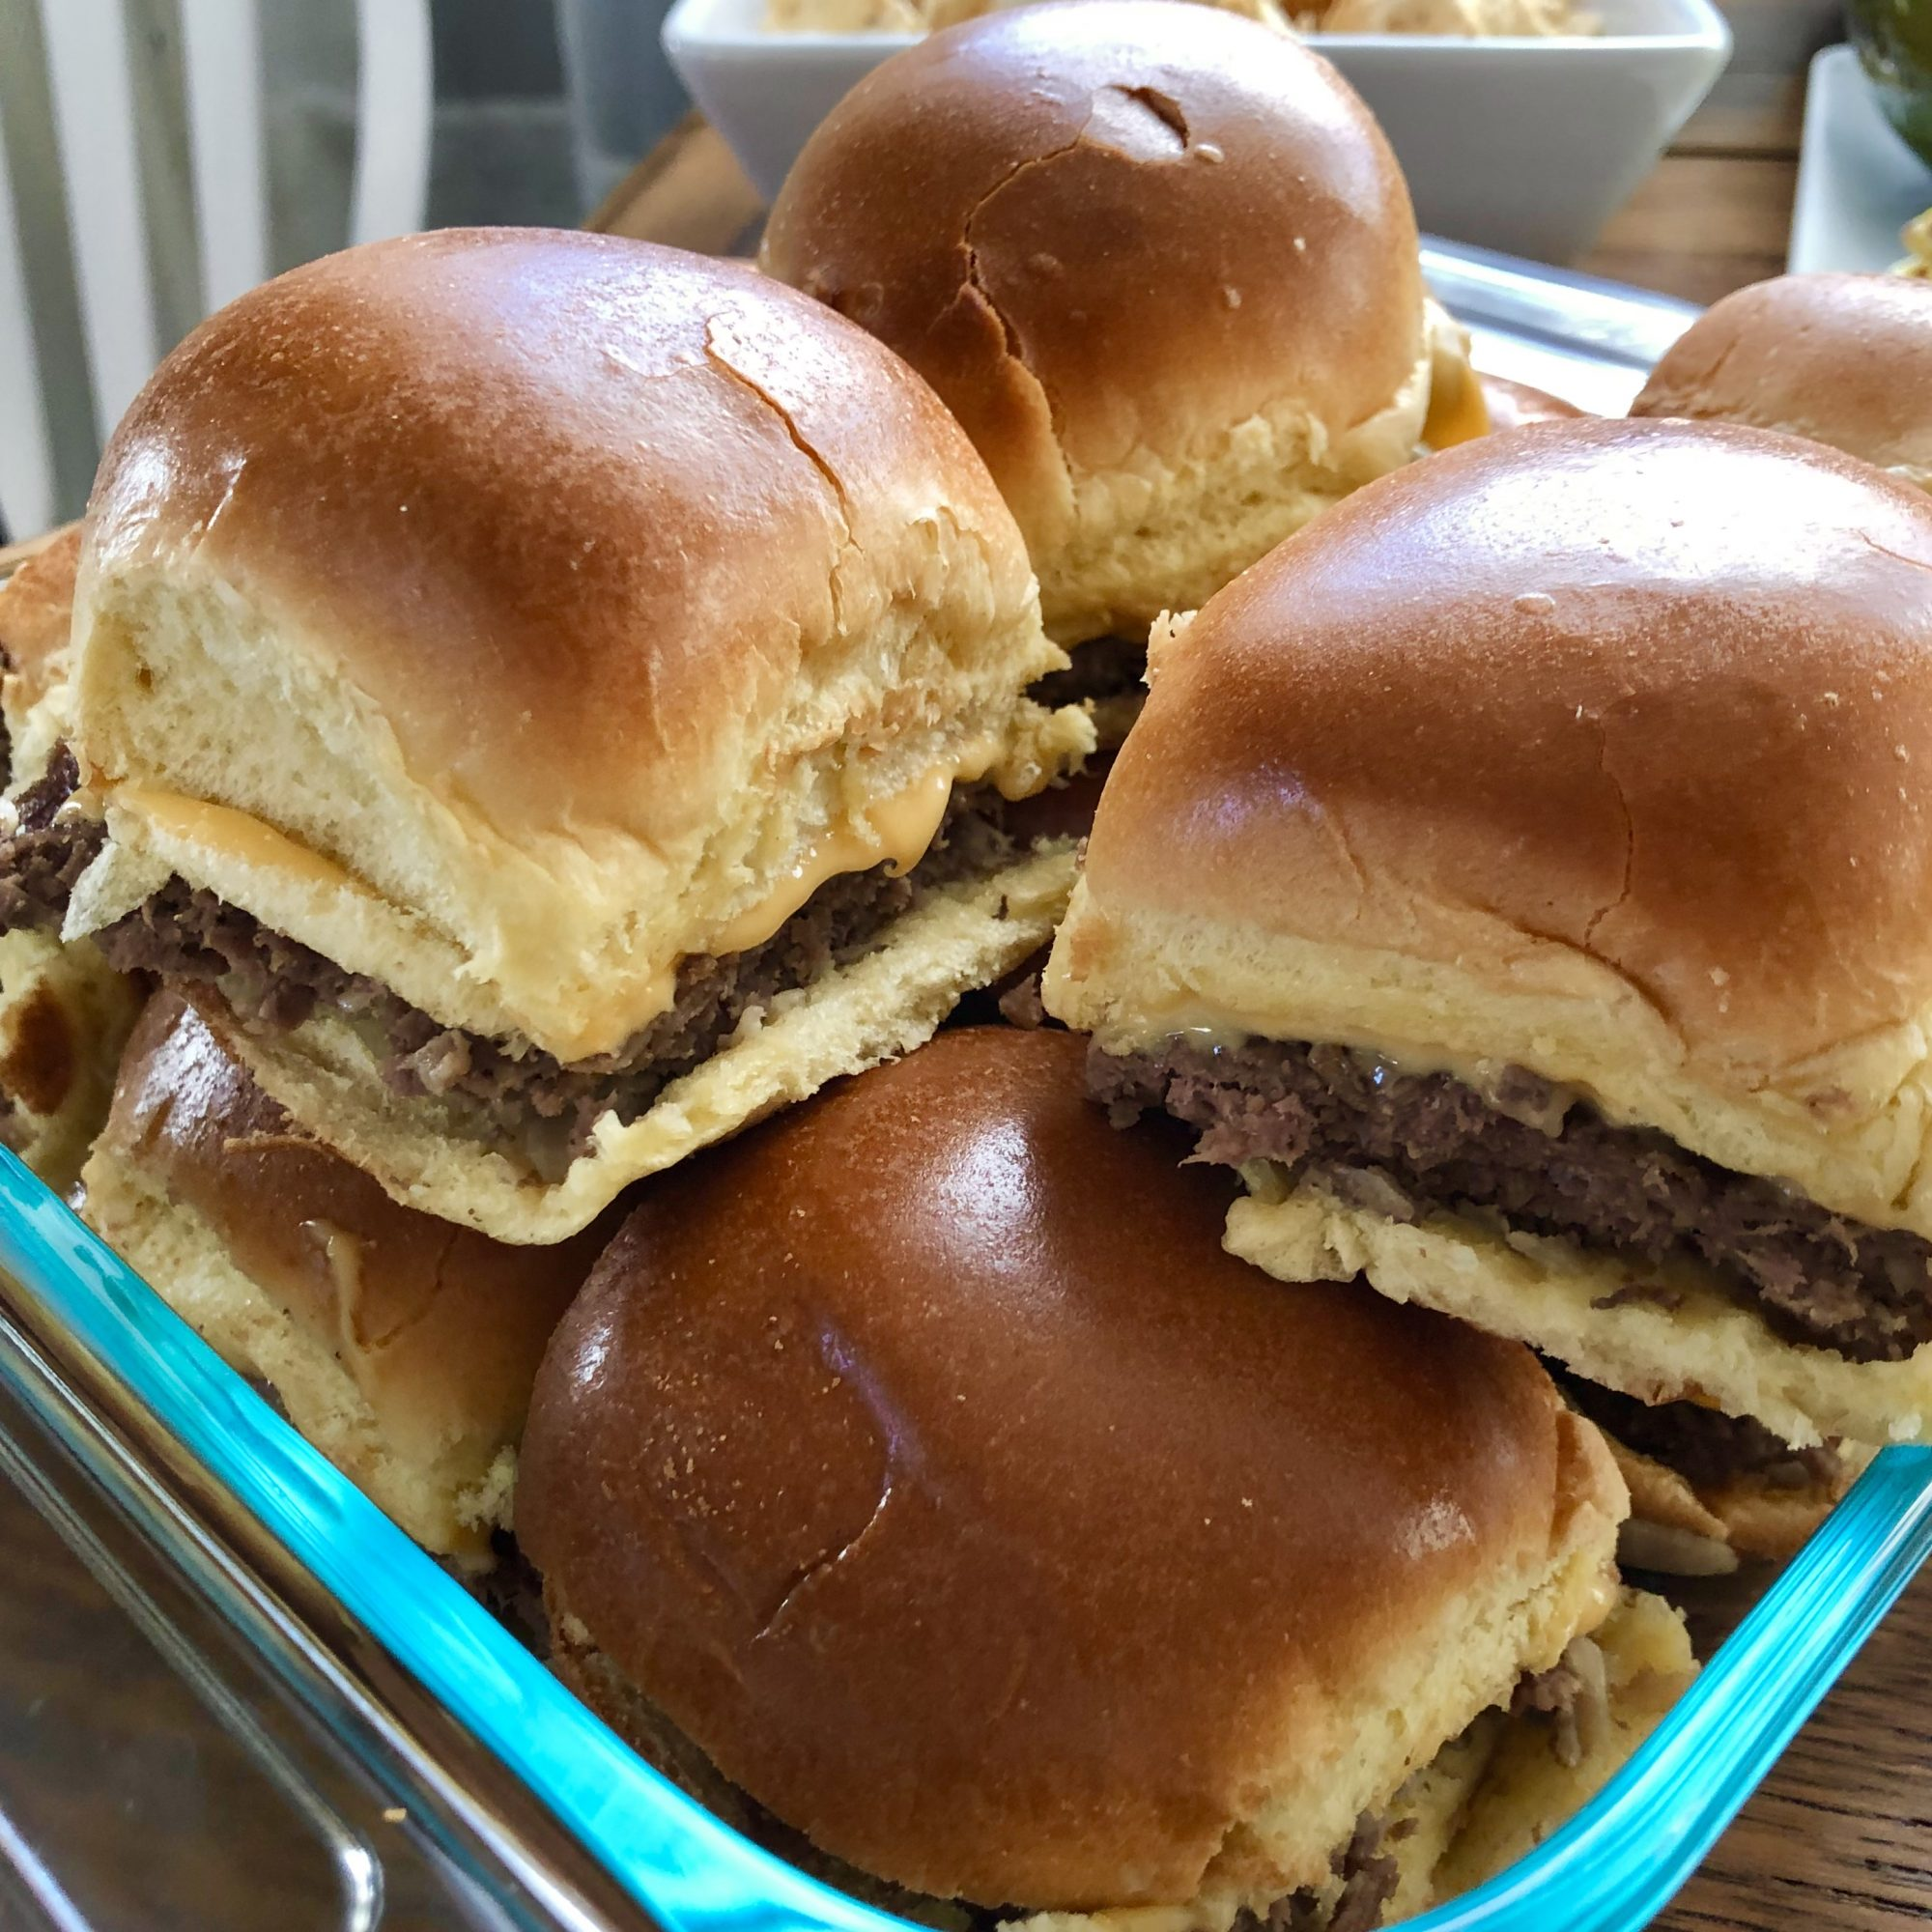 Got a craving for sliders? You'll recognize the style of these ground beef patties from their drive-thru inspiration. You can keep it simple with American cheese, dill pickle, and mustard, or fix it up with as many toppings as you want.